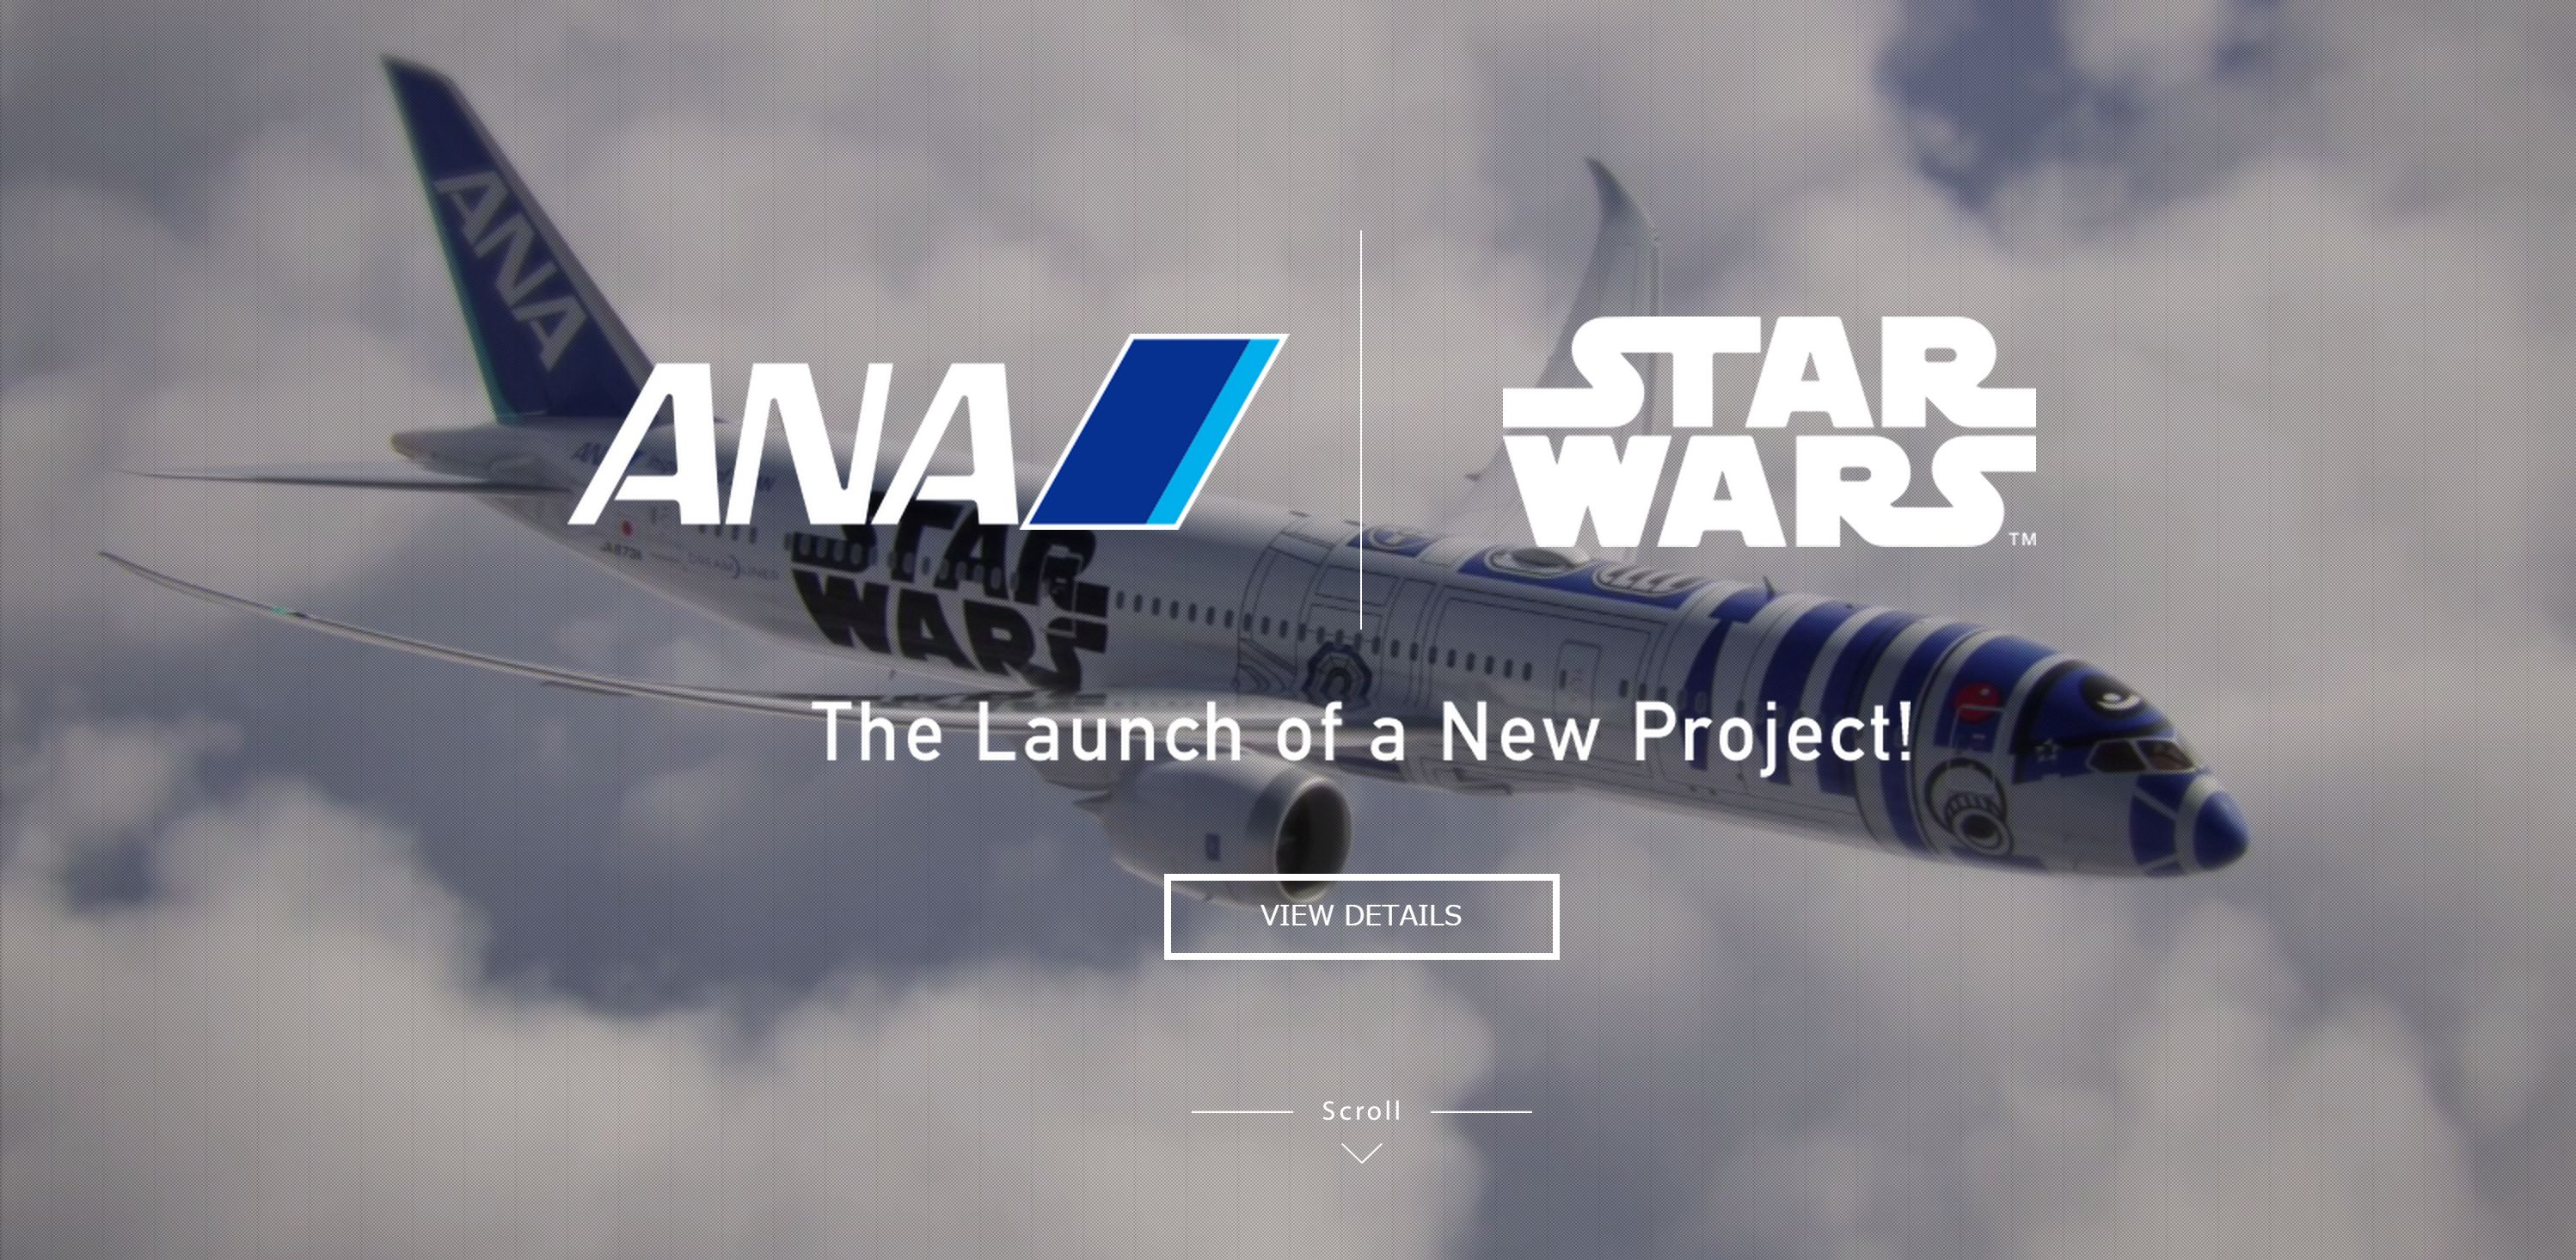 The ANA『Star Wars Project』